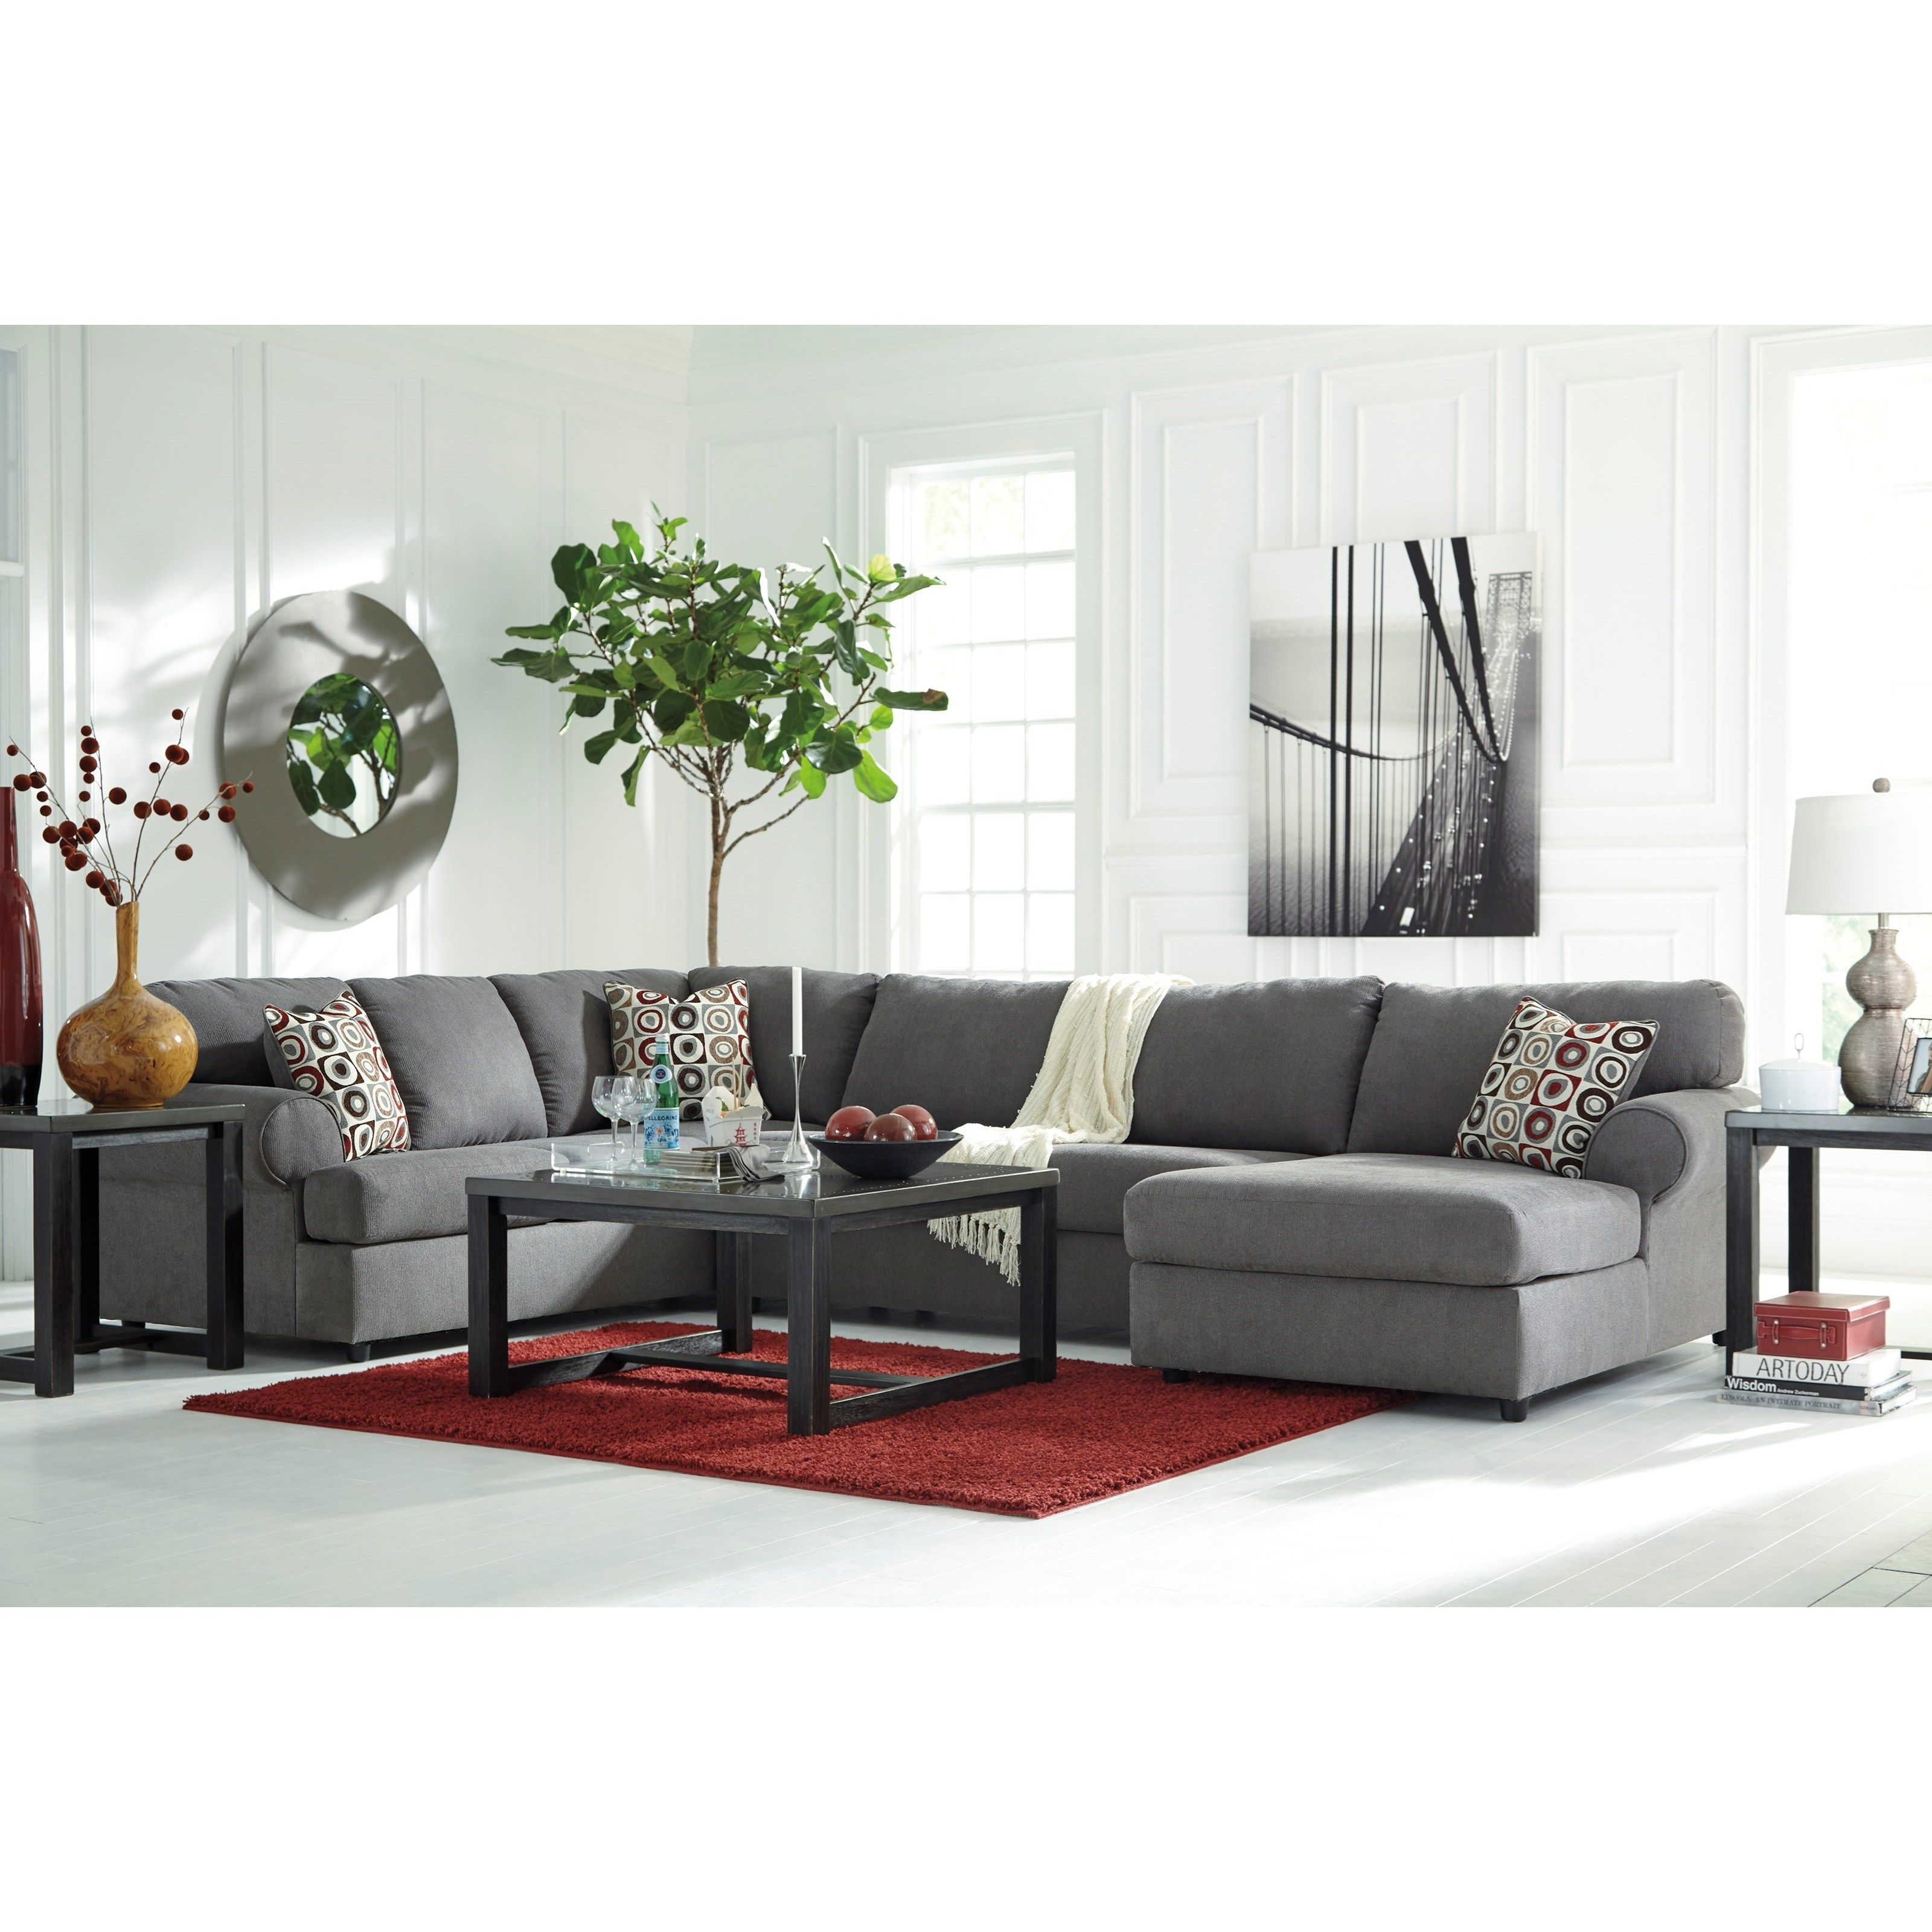 Jayceon Sectional with Right Chaise by Signature